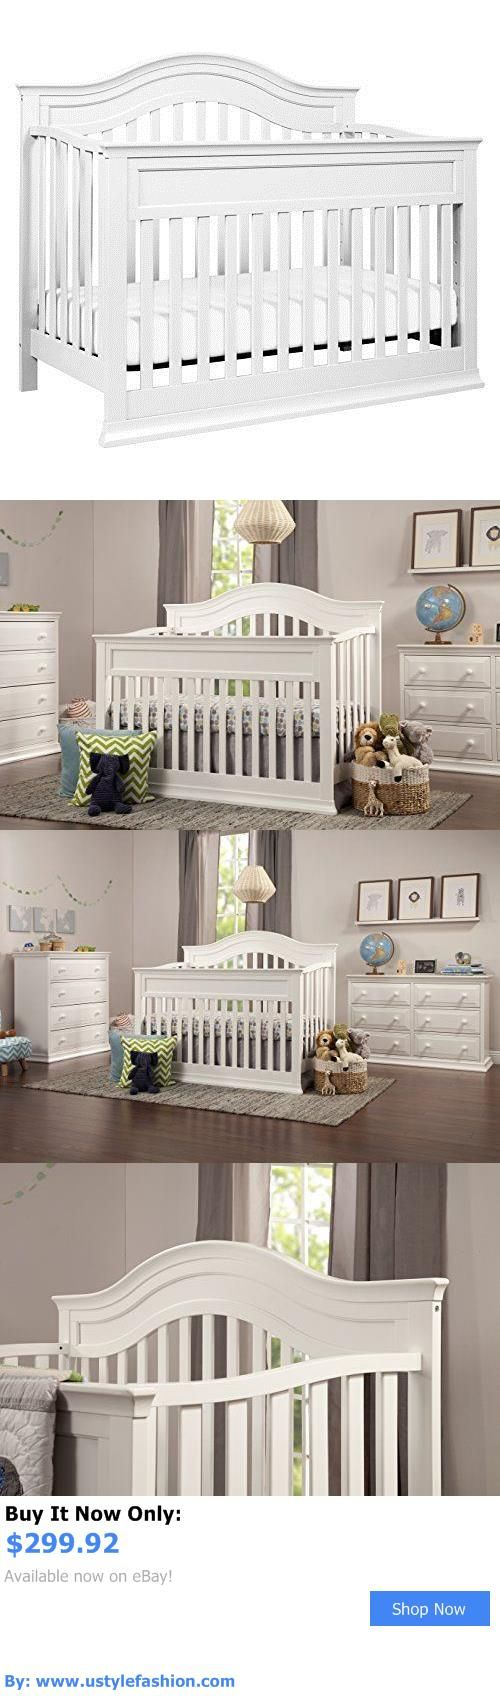 786 best baby cribs images on pinterest baby cribs babies rooms